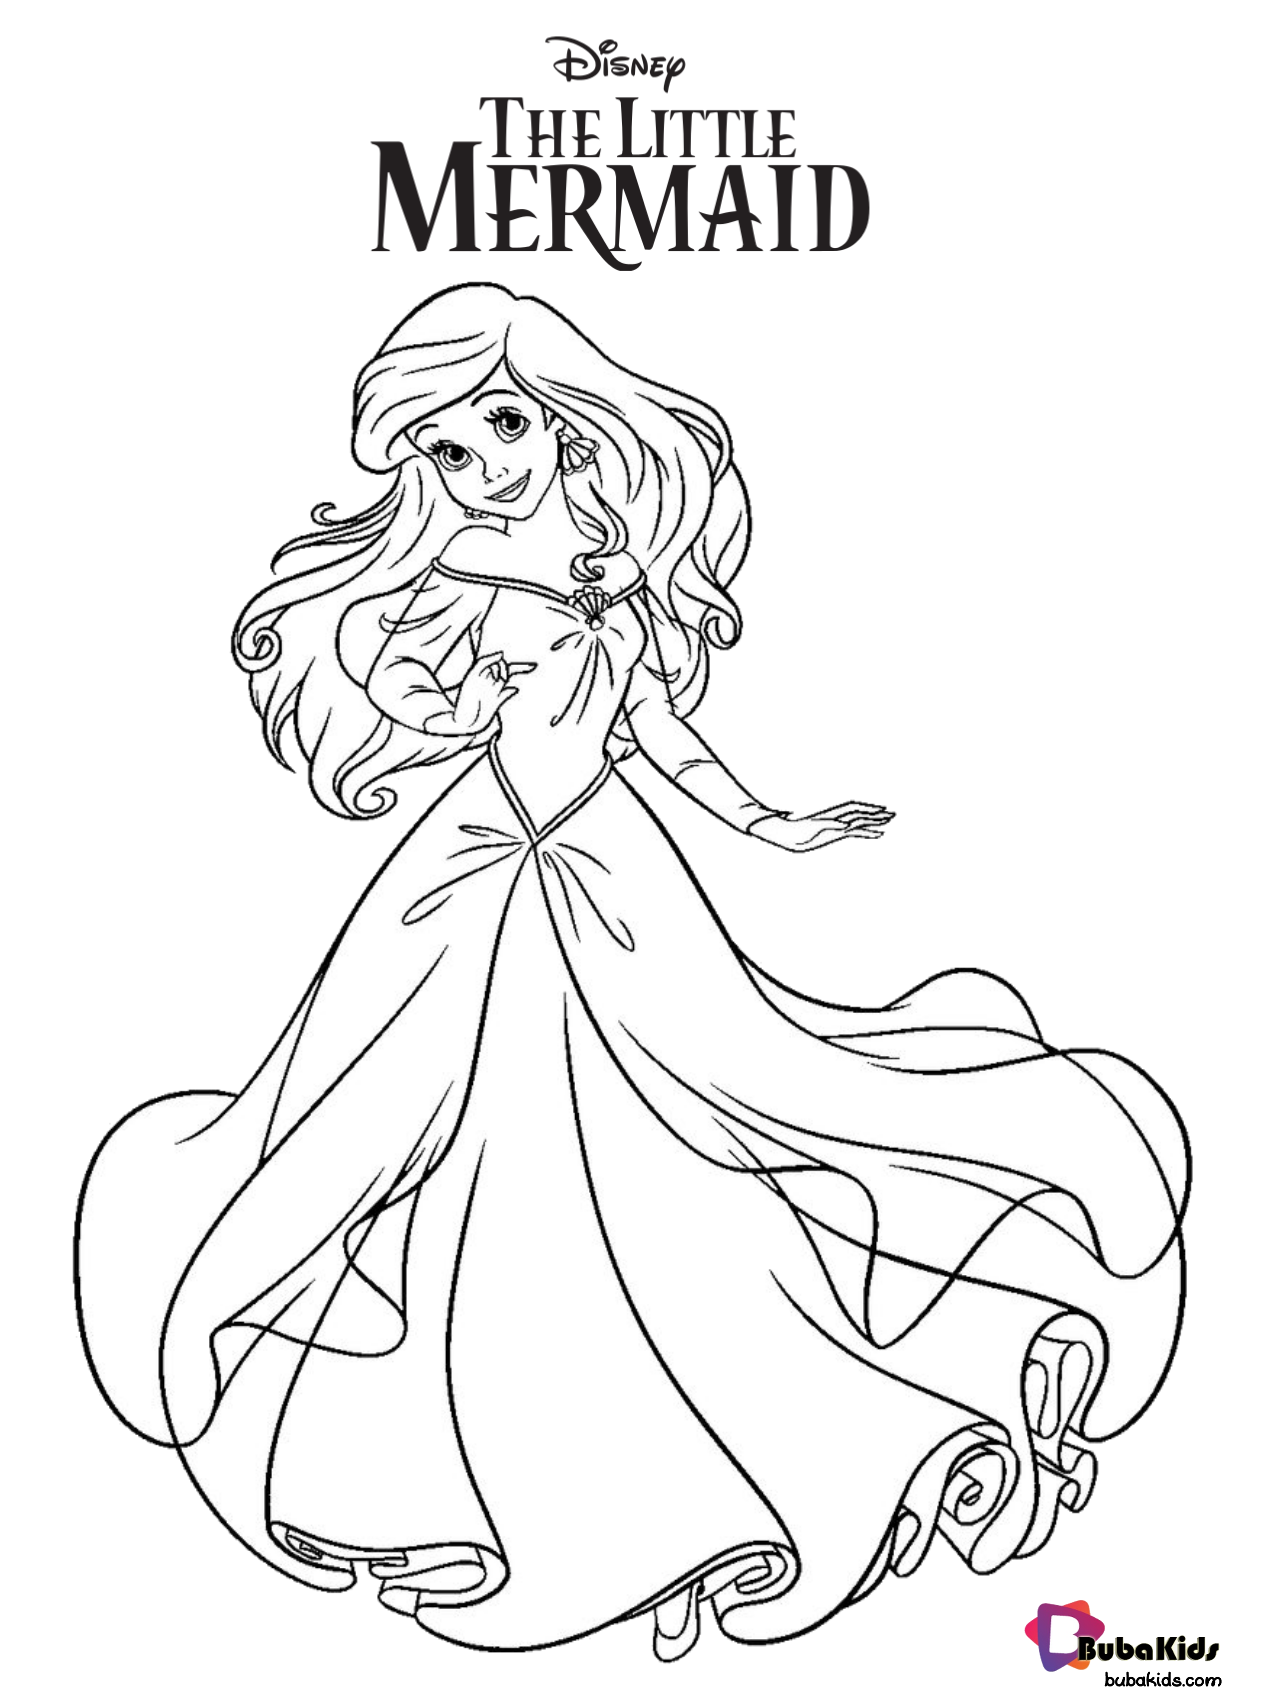 Free Printable Ariel The Little Mermaid Coloring Pages Collection Of Cartoon Colo Ariel Coloring Pages Princess Coloring Pages Disney Princess Coloring Pages